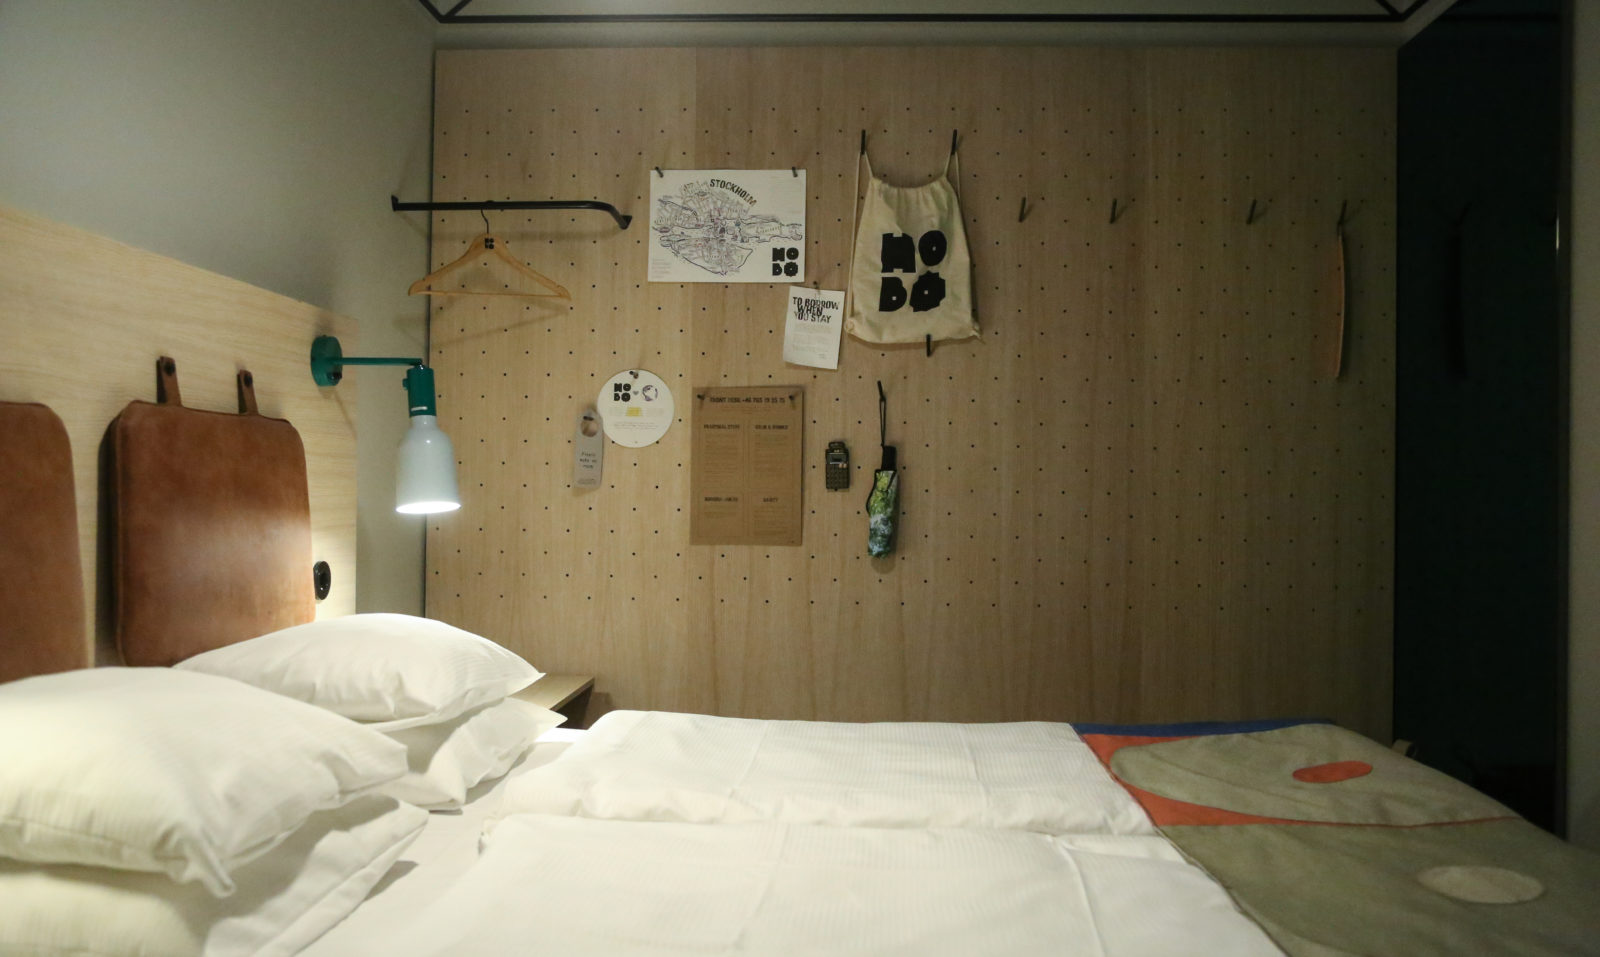 King size bed with white fresh sheets at Hobo Hotel in Stockholm